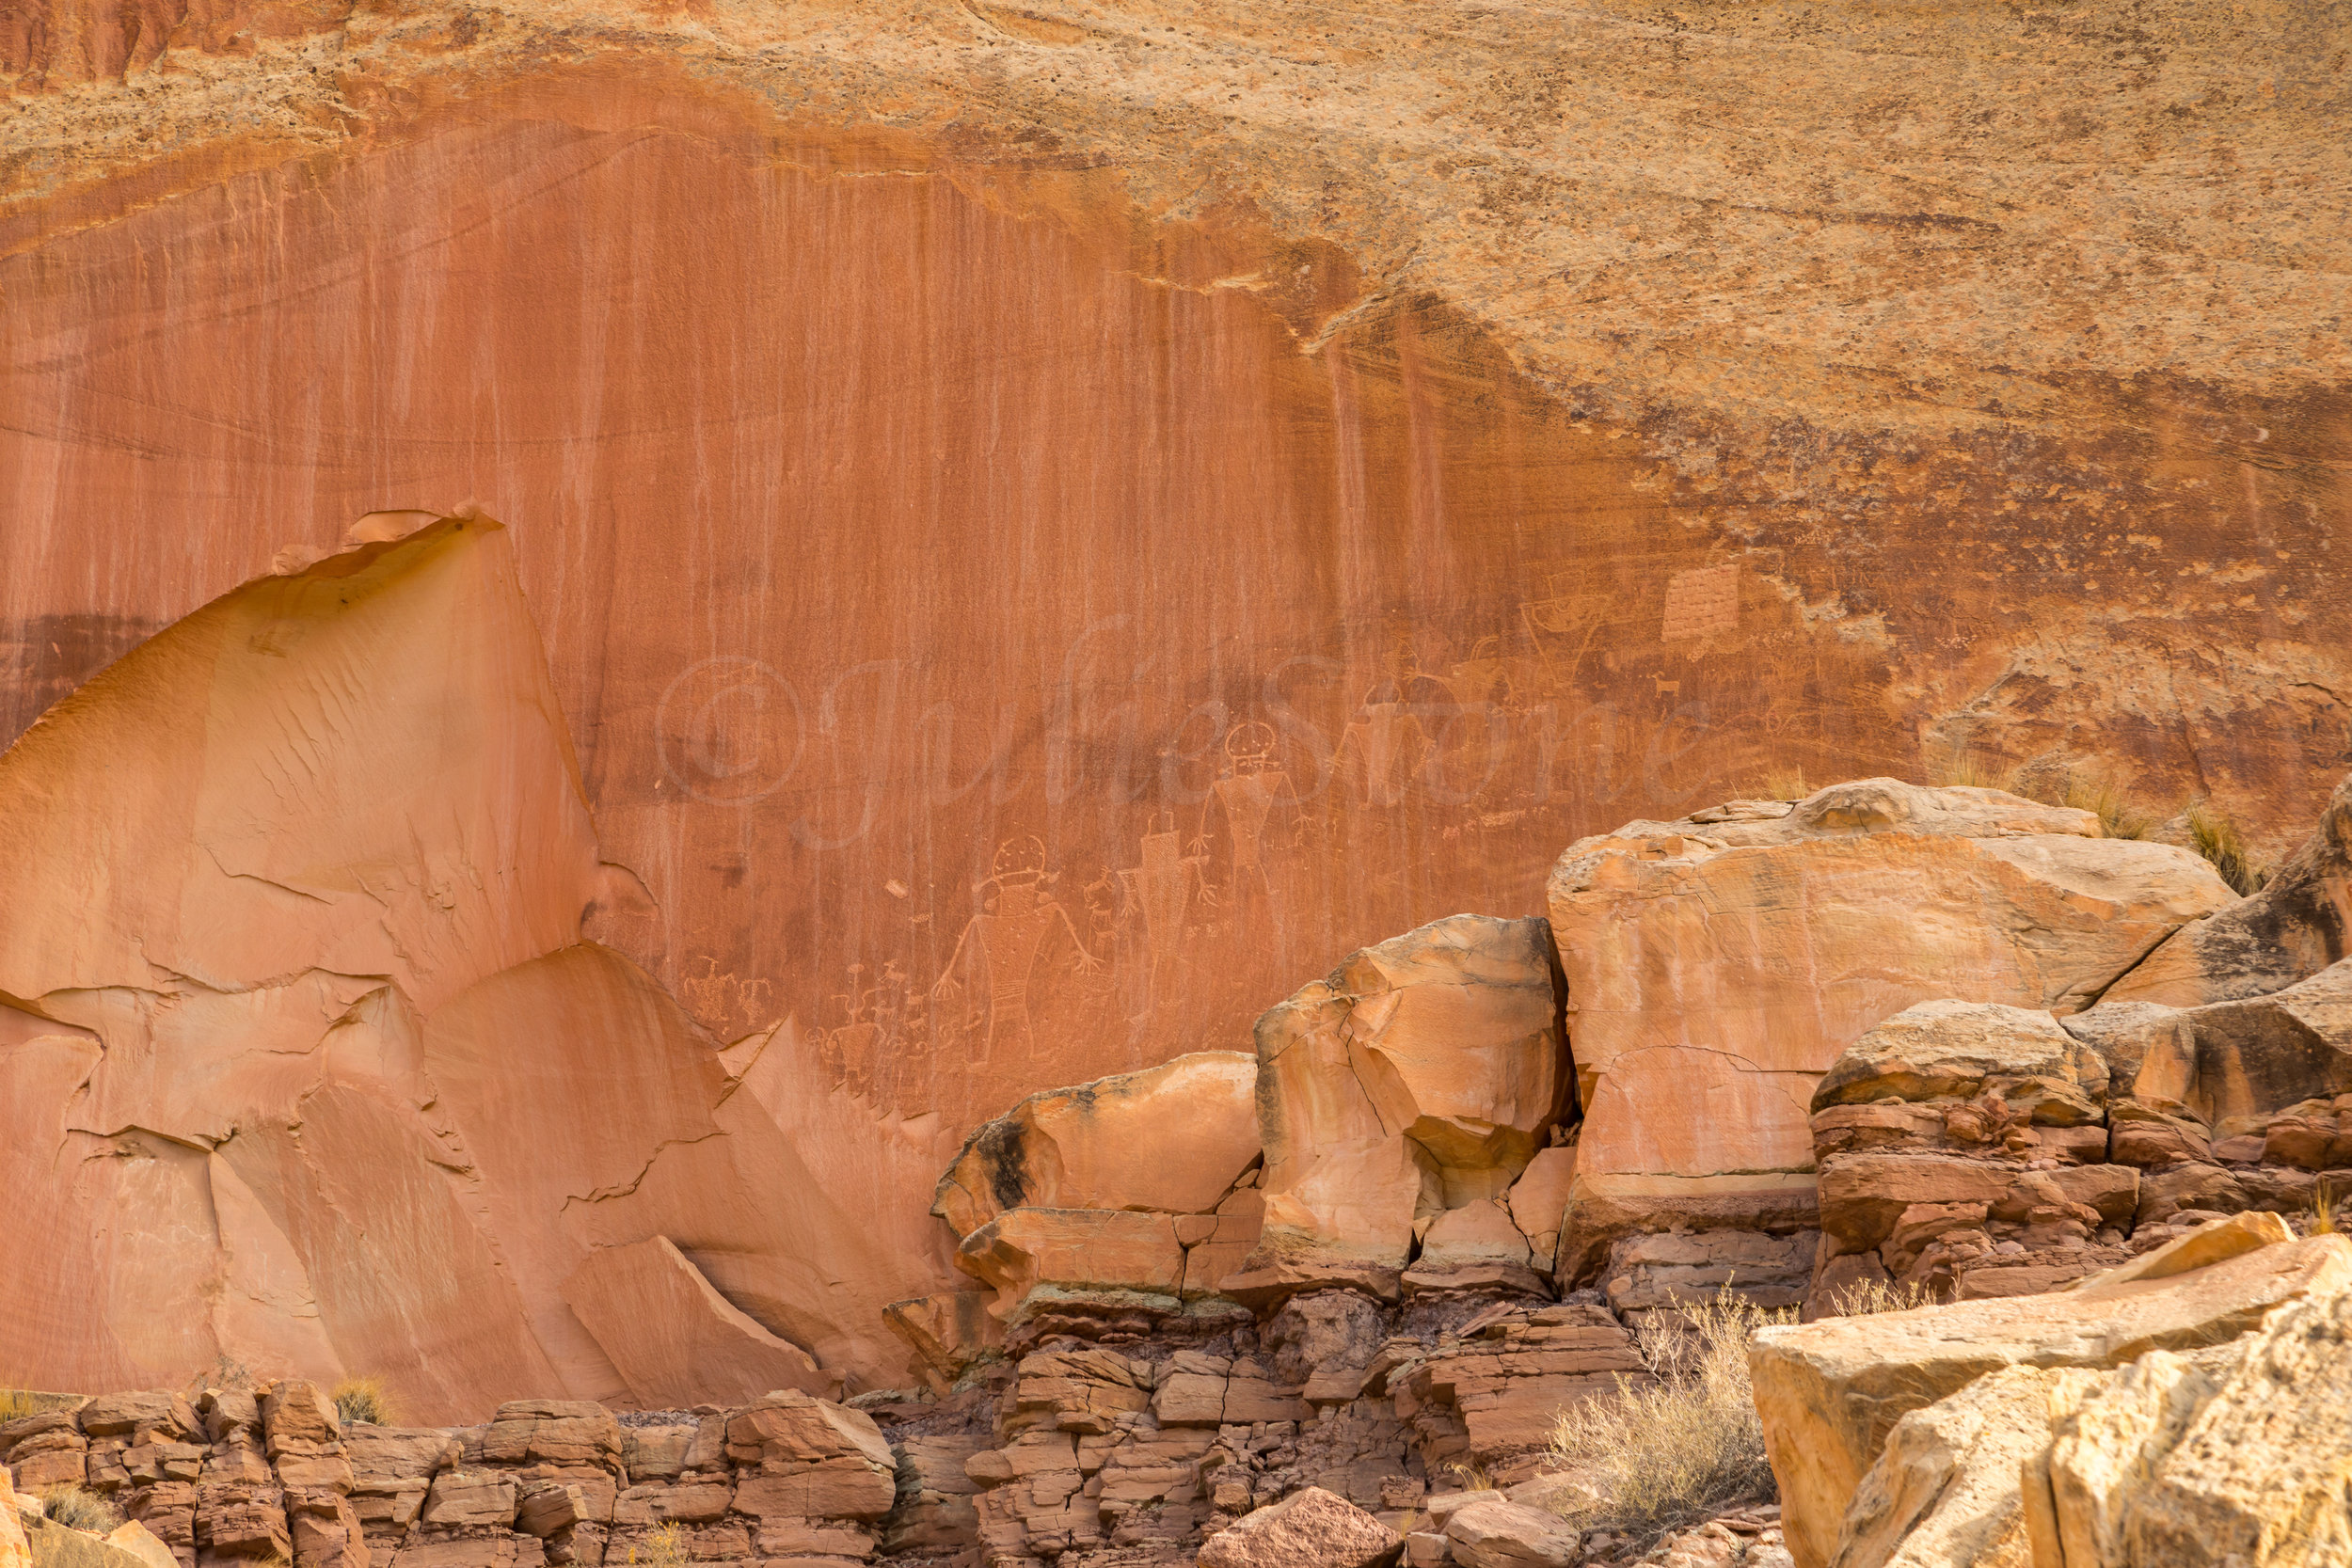 Capitol Reef National Park, Image # 6743